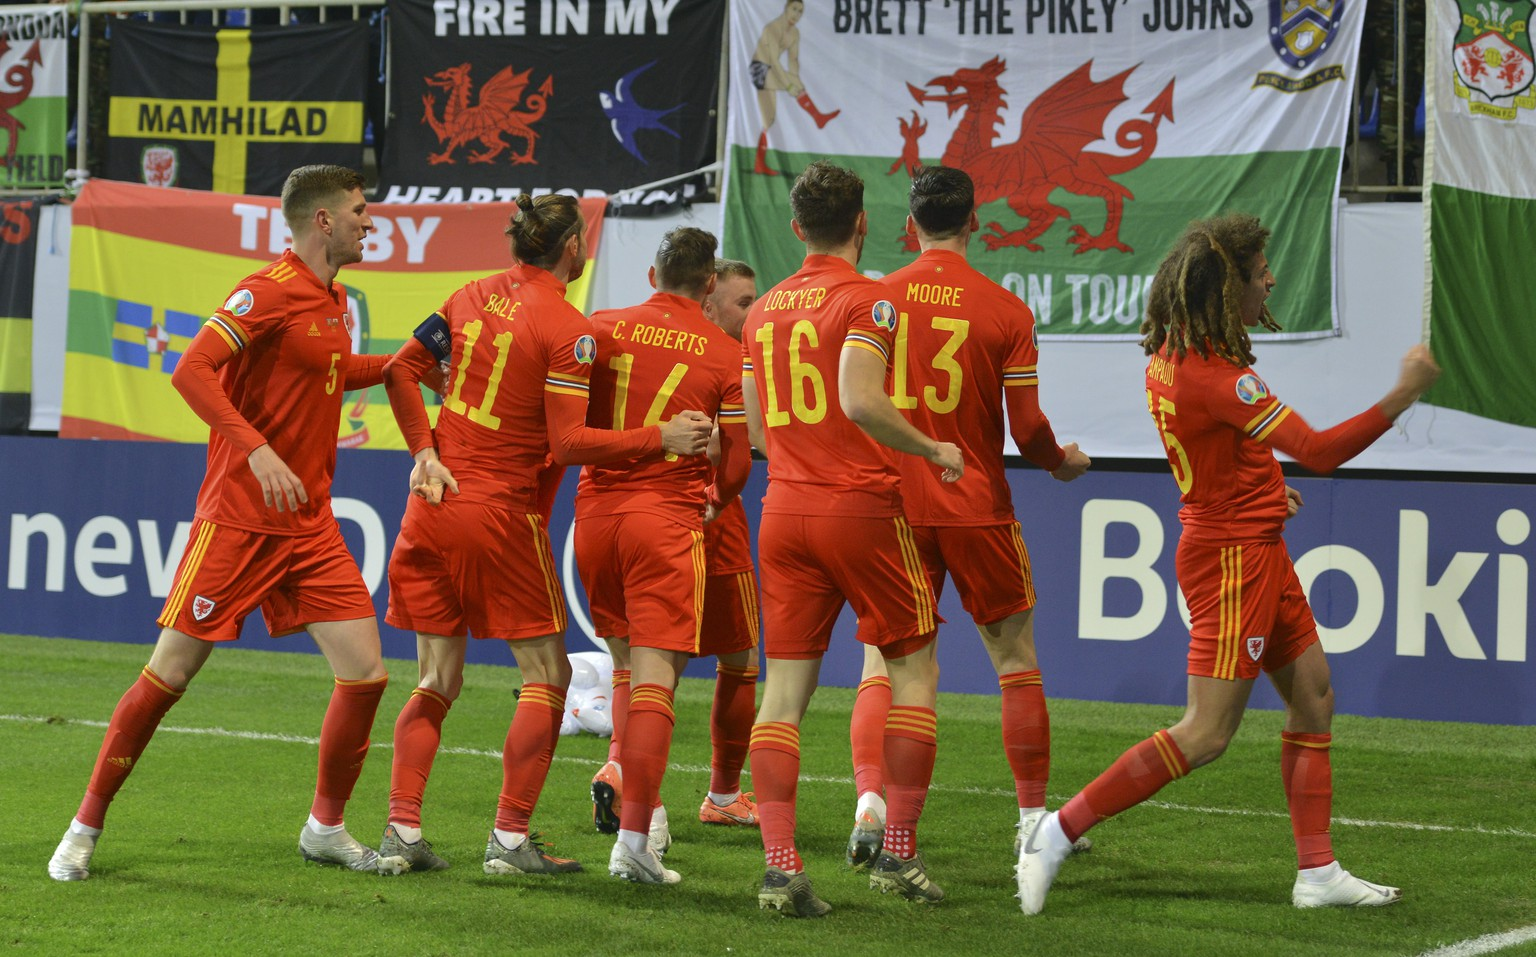 Wales' players celebrate after scoring the opening goal during the Euro 2020 group E qualifying soccer match between Wales and Azerbaijan at the Olympic stadium in Baku, Azerbaijan, Saturday Nov. 16, 2019. (AP Photo/Aziz Karimov)